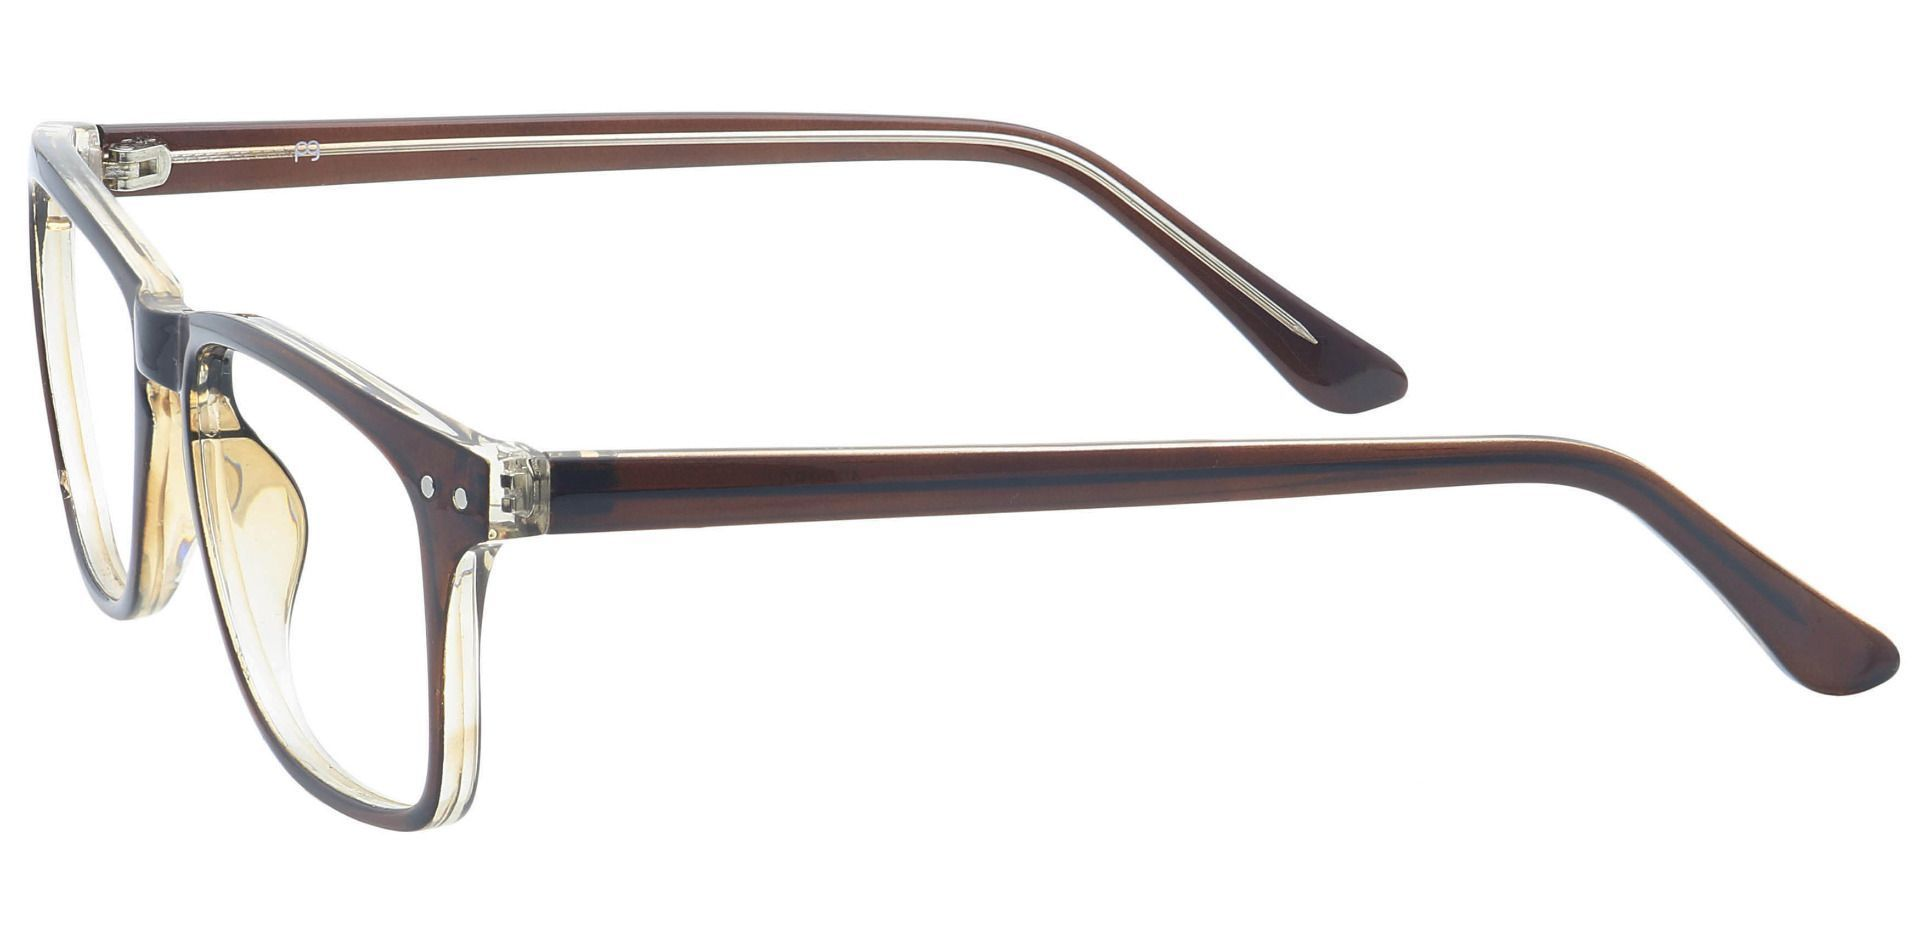 Hope Oval Non-Rx Glasses - Brown